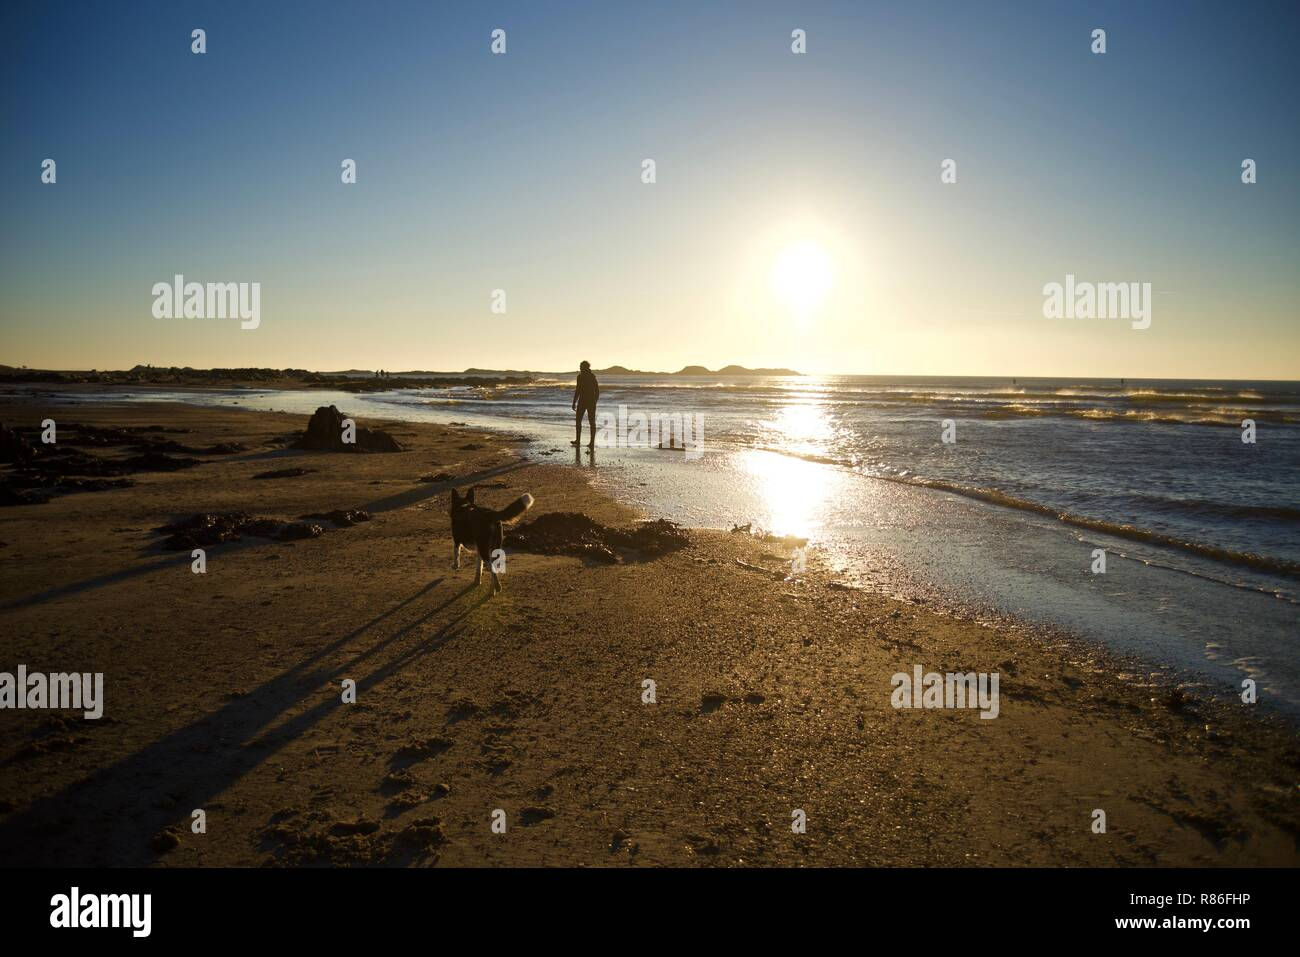 A man and his dog walking on the beach at sunset in Rhosneigr, Anglesey, Wales, UK - Stock Image